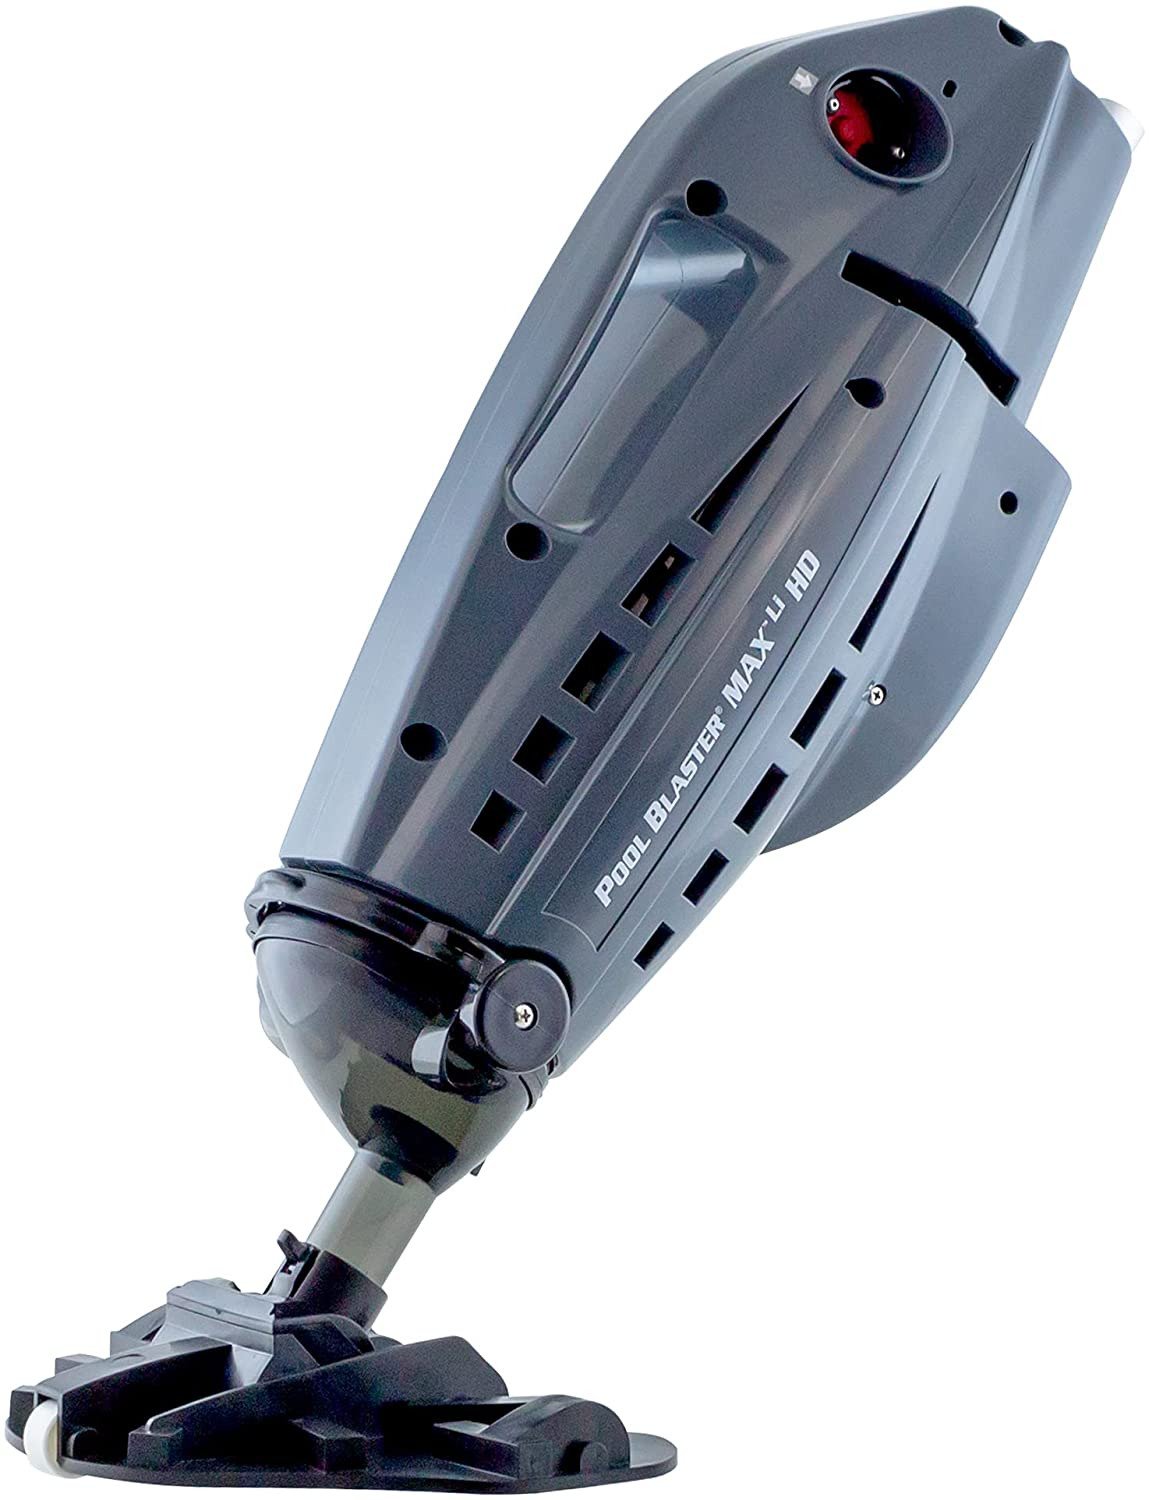 POOL BLASTER Water Tech Max HD Cordless Rechargeable